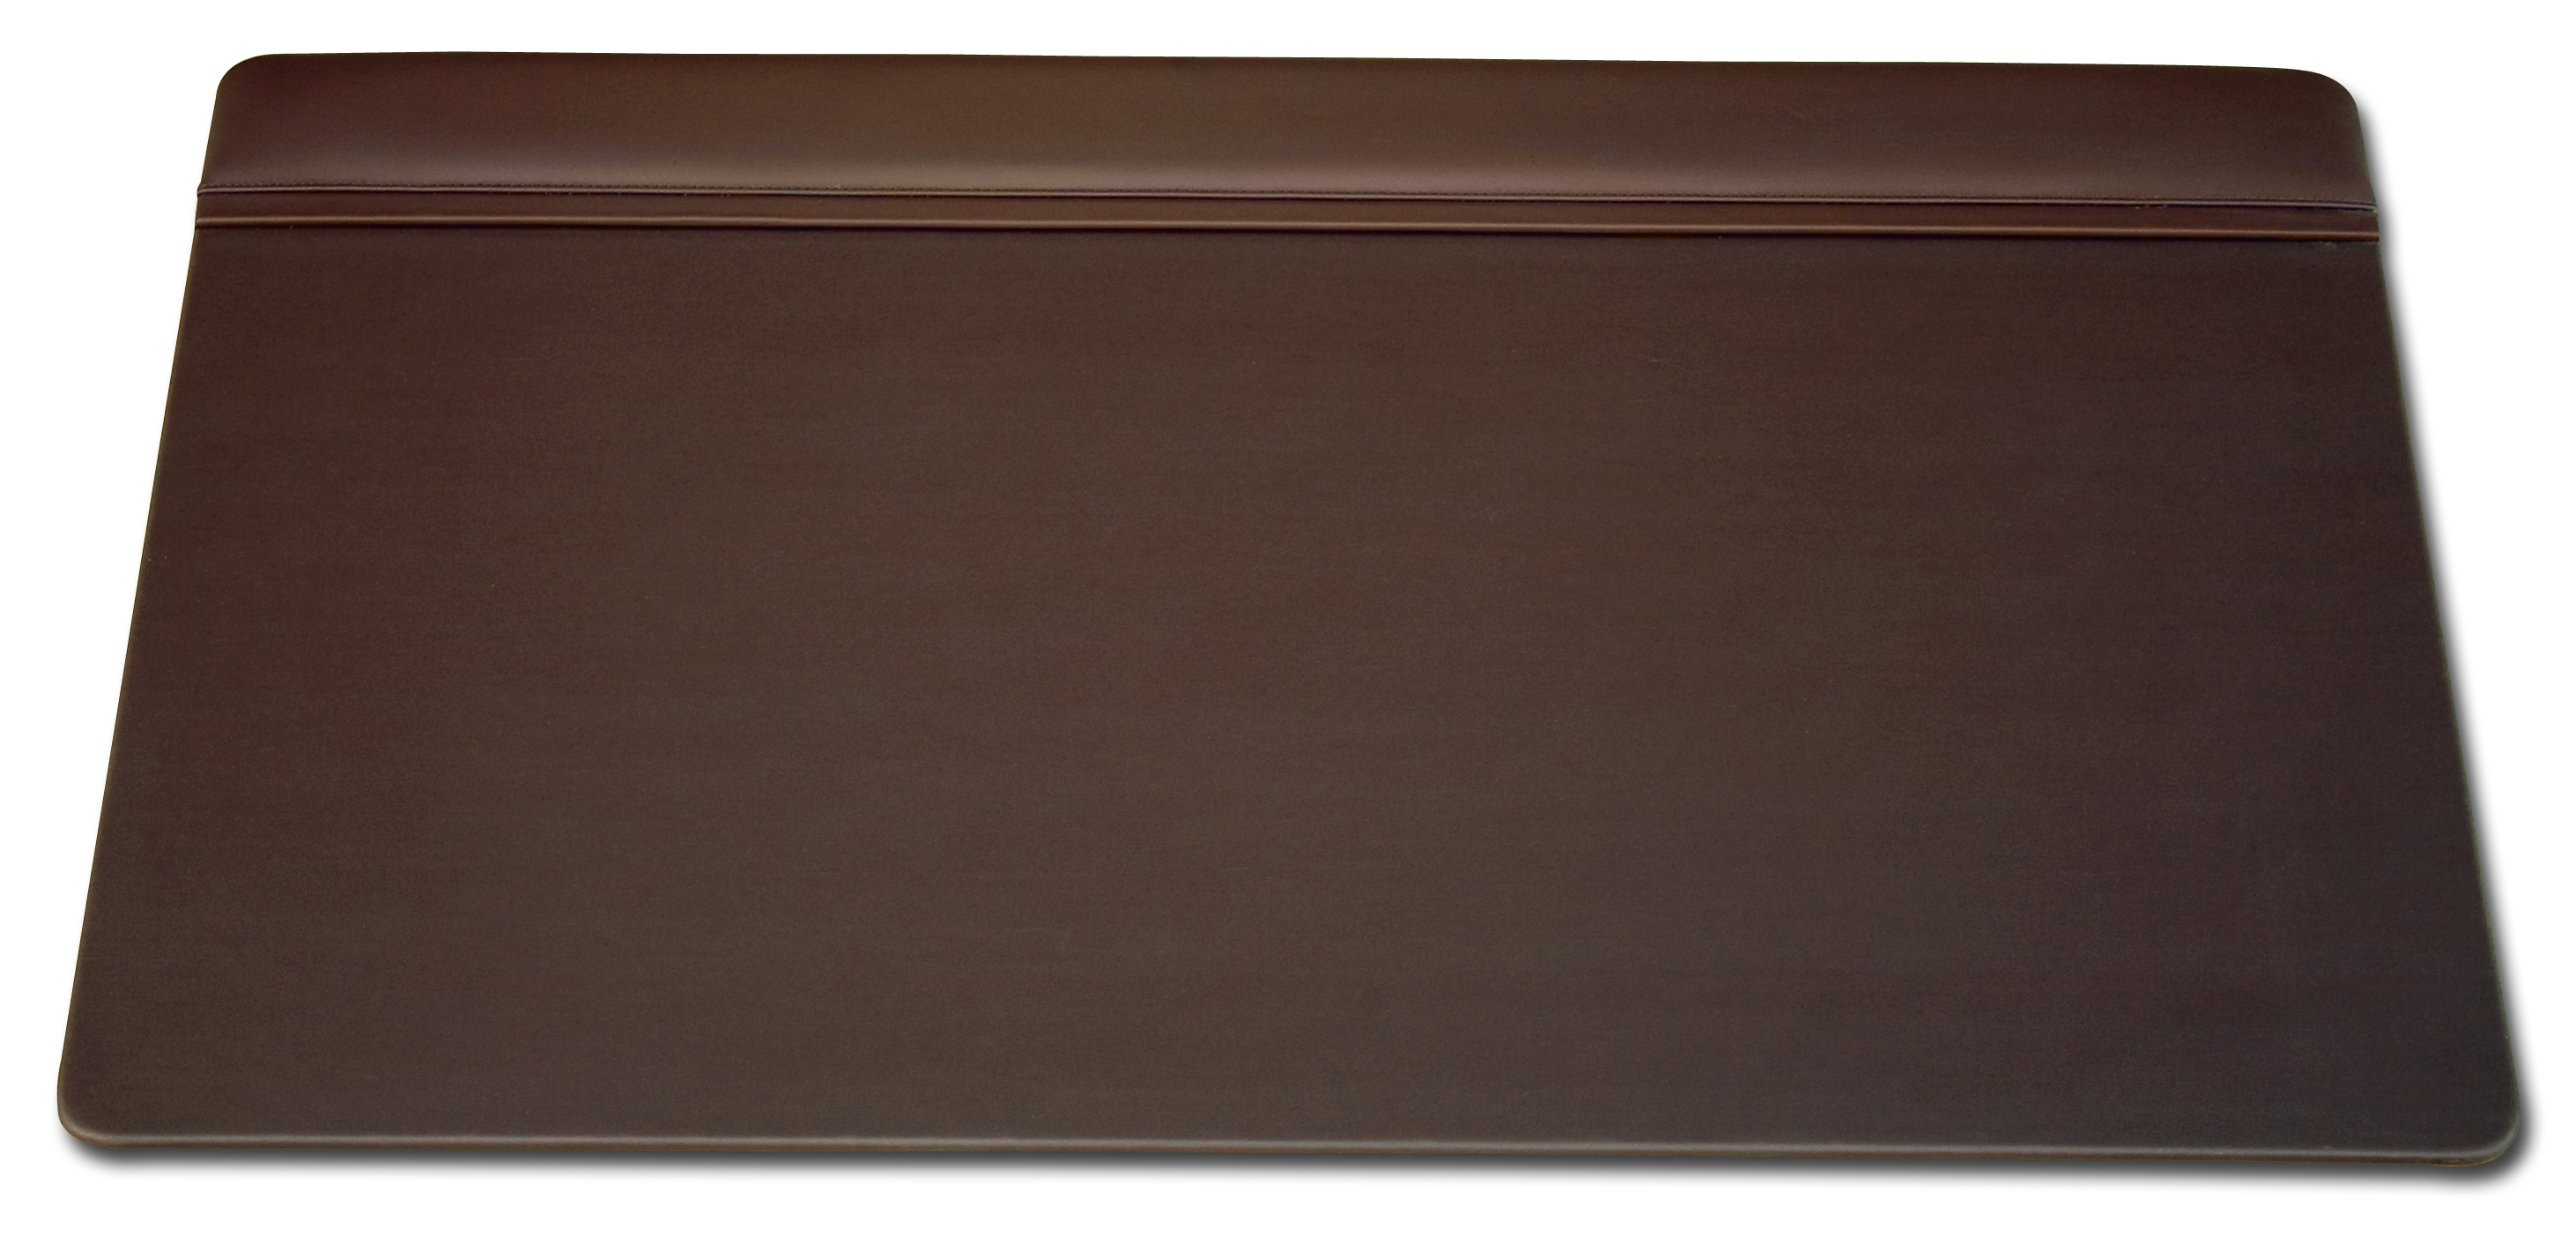 Dacasso Chocolate Brown Top-rail Pad, 34 by 20-Inch